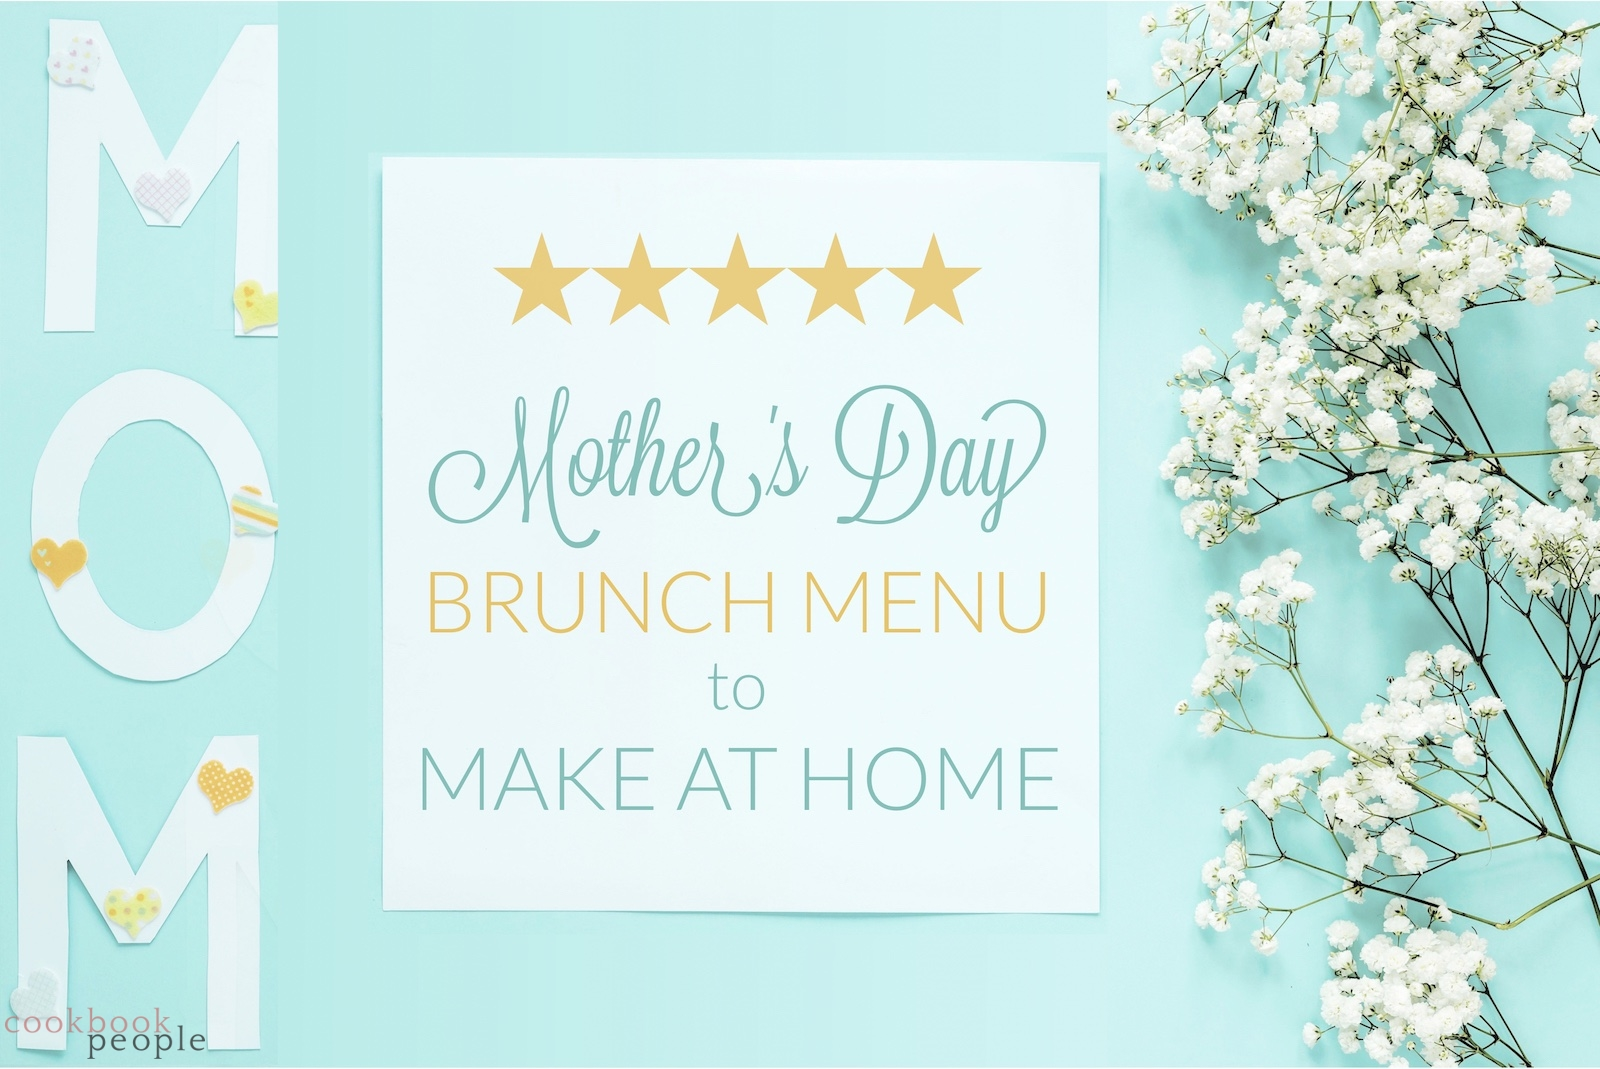 Mom in paper letters with flowers and title: 5-Star Mother's Day Brunch Menu to Make at Home